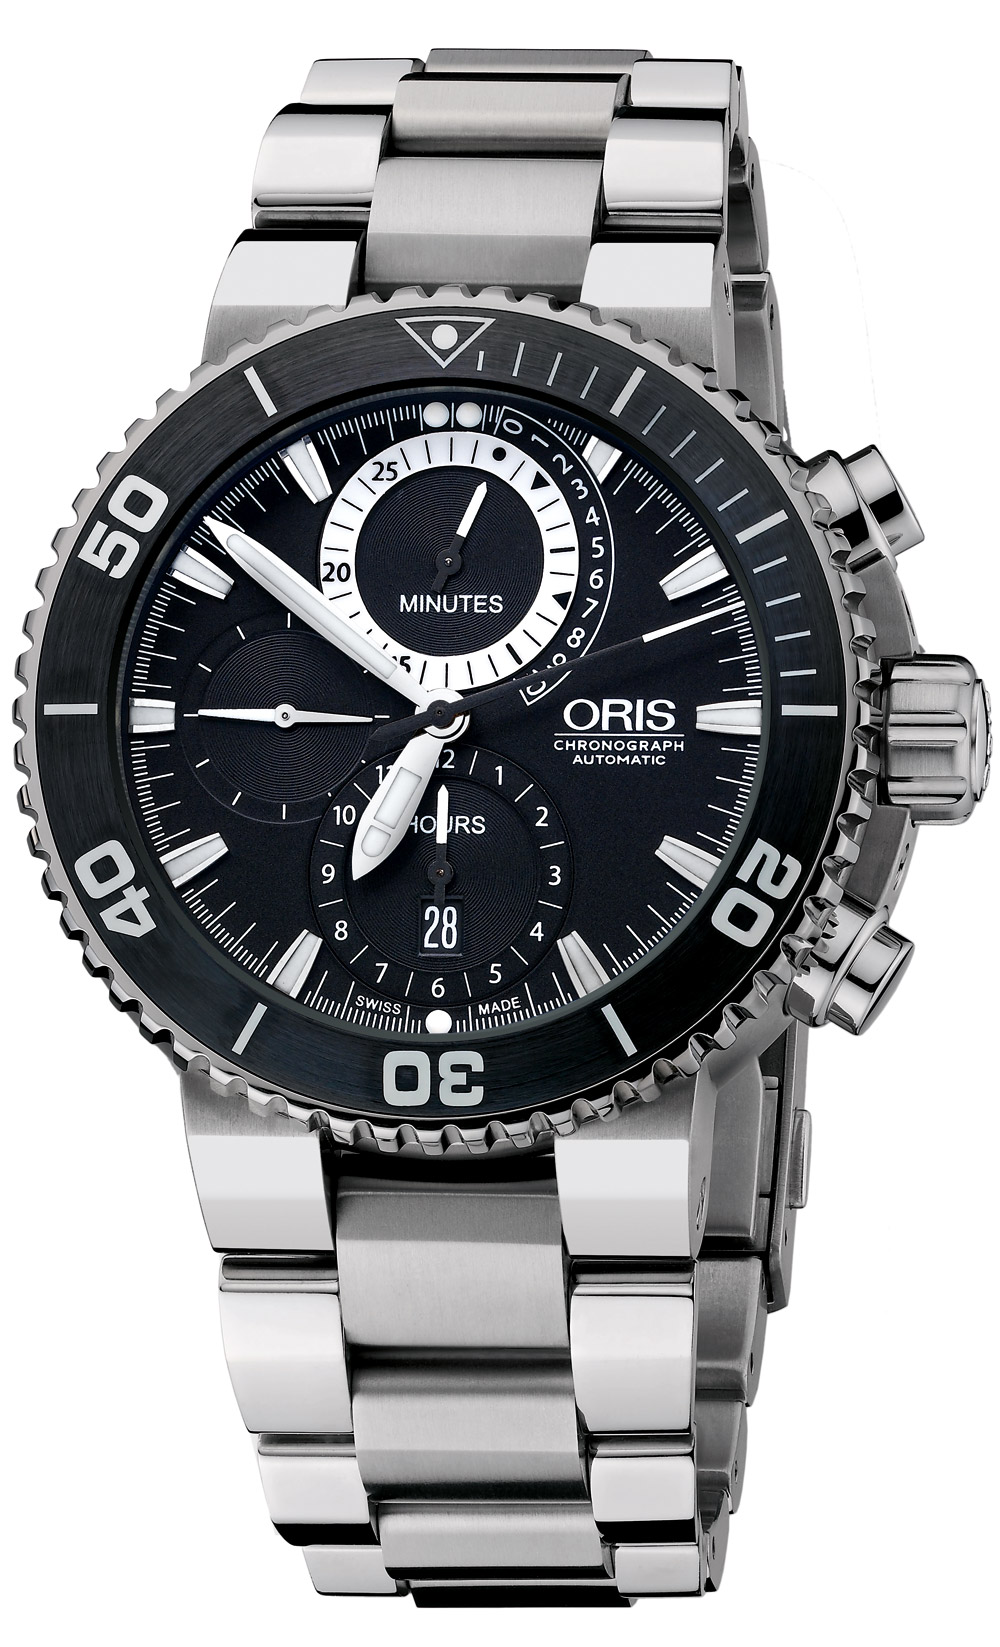 Oris carlos coste limited edition men 39 s watch model for Oris watches